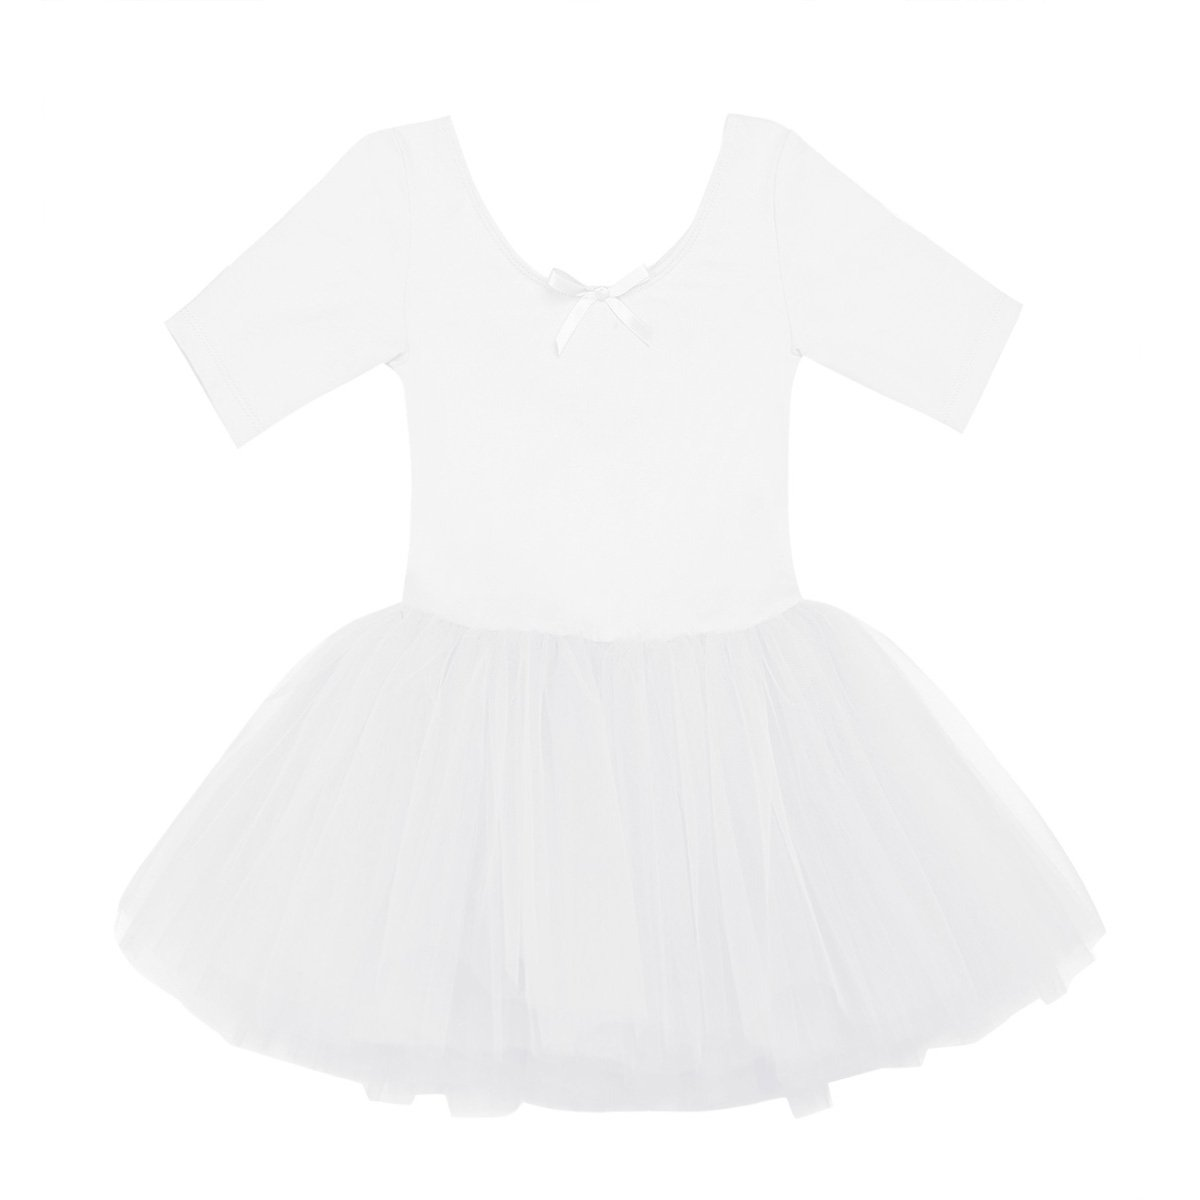 Freebily Children Girls Rhinestones Ballet Dance Tutu Dress Ballerina Leotard Fairy Princess Dress up Costumes